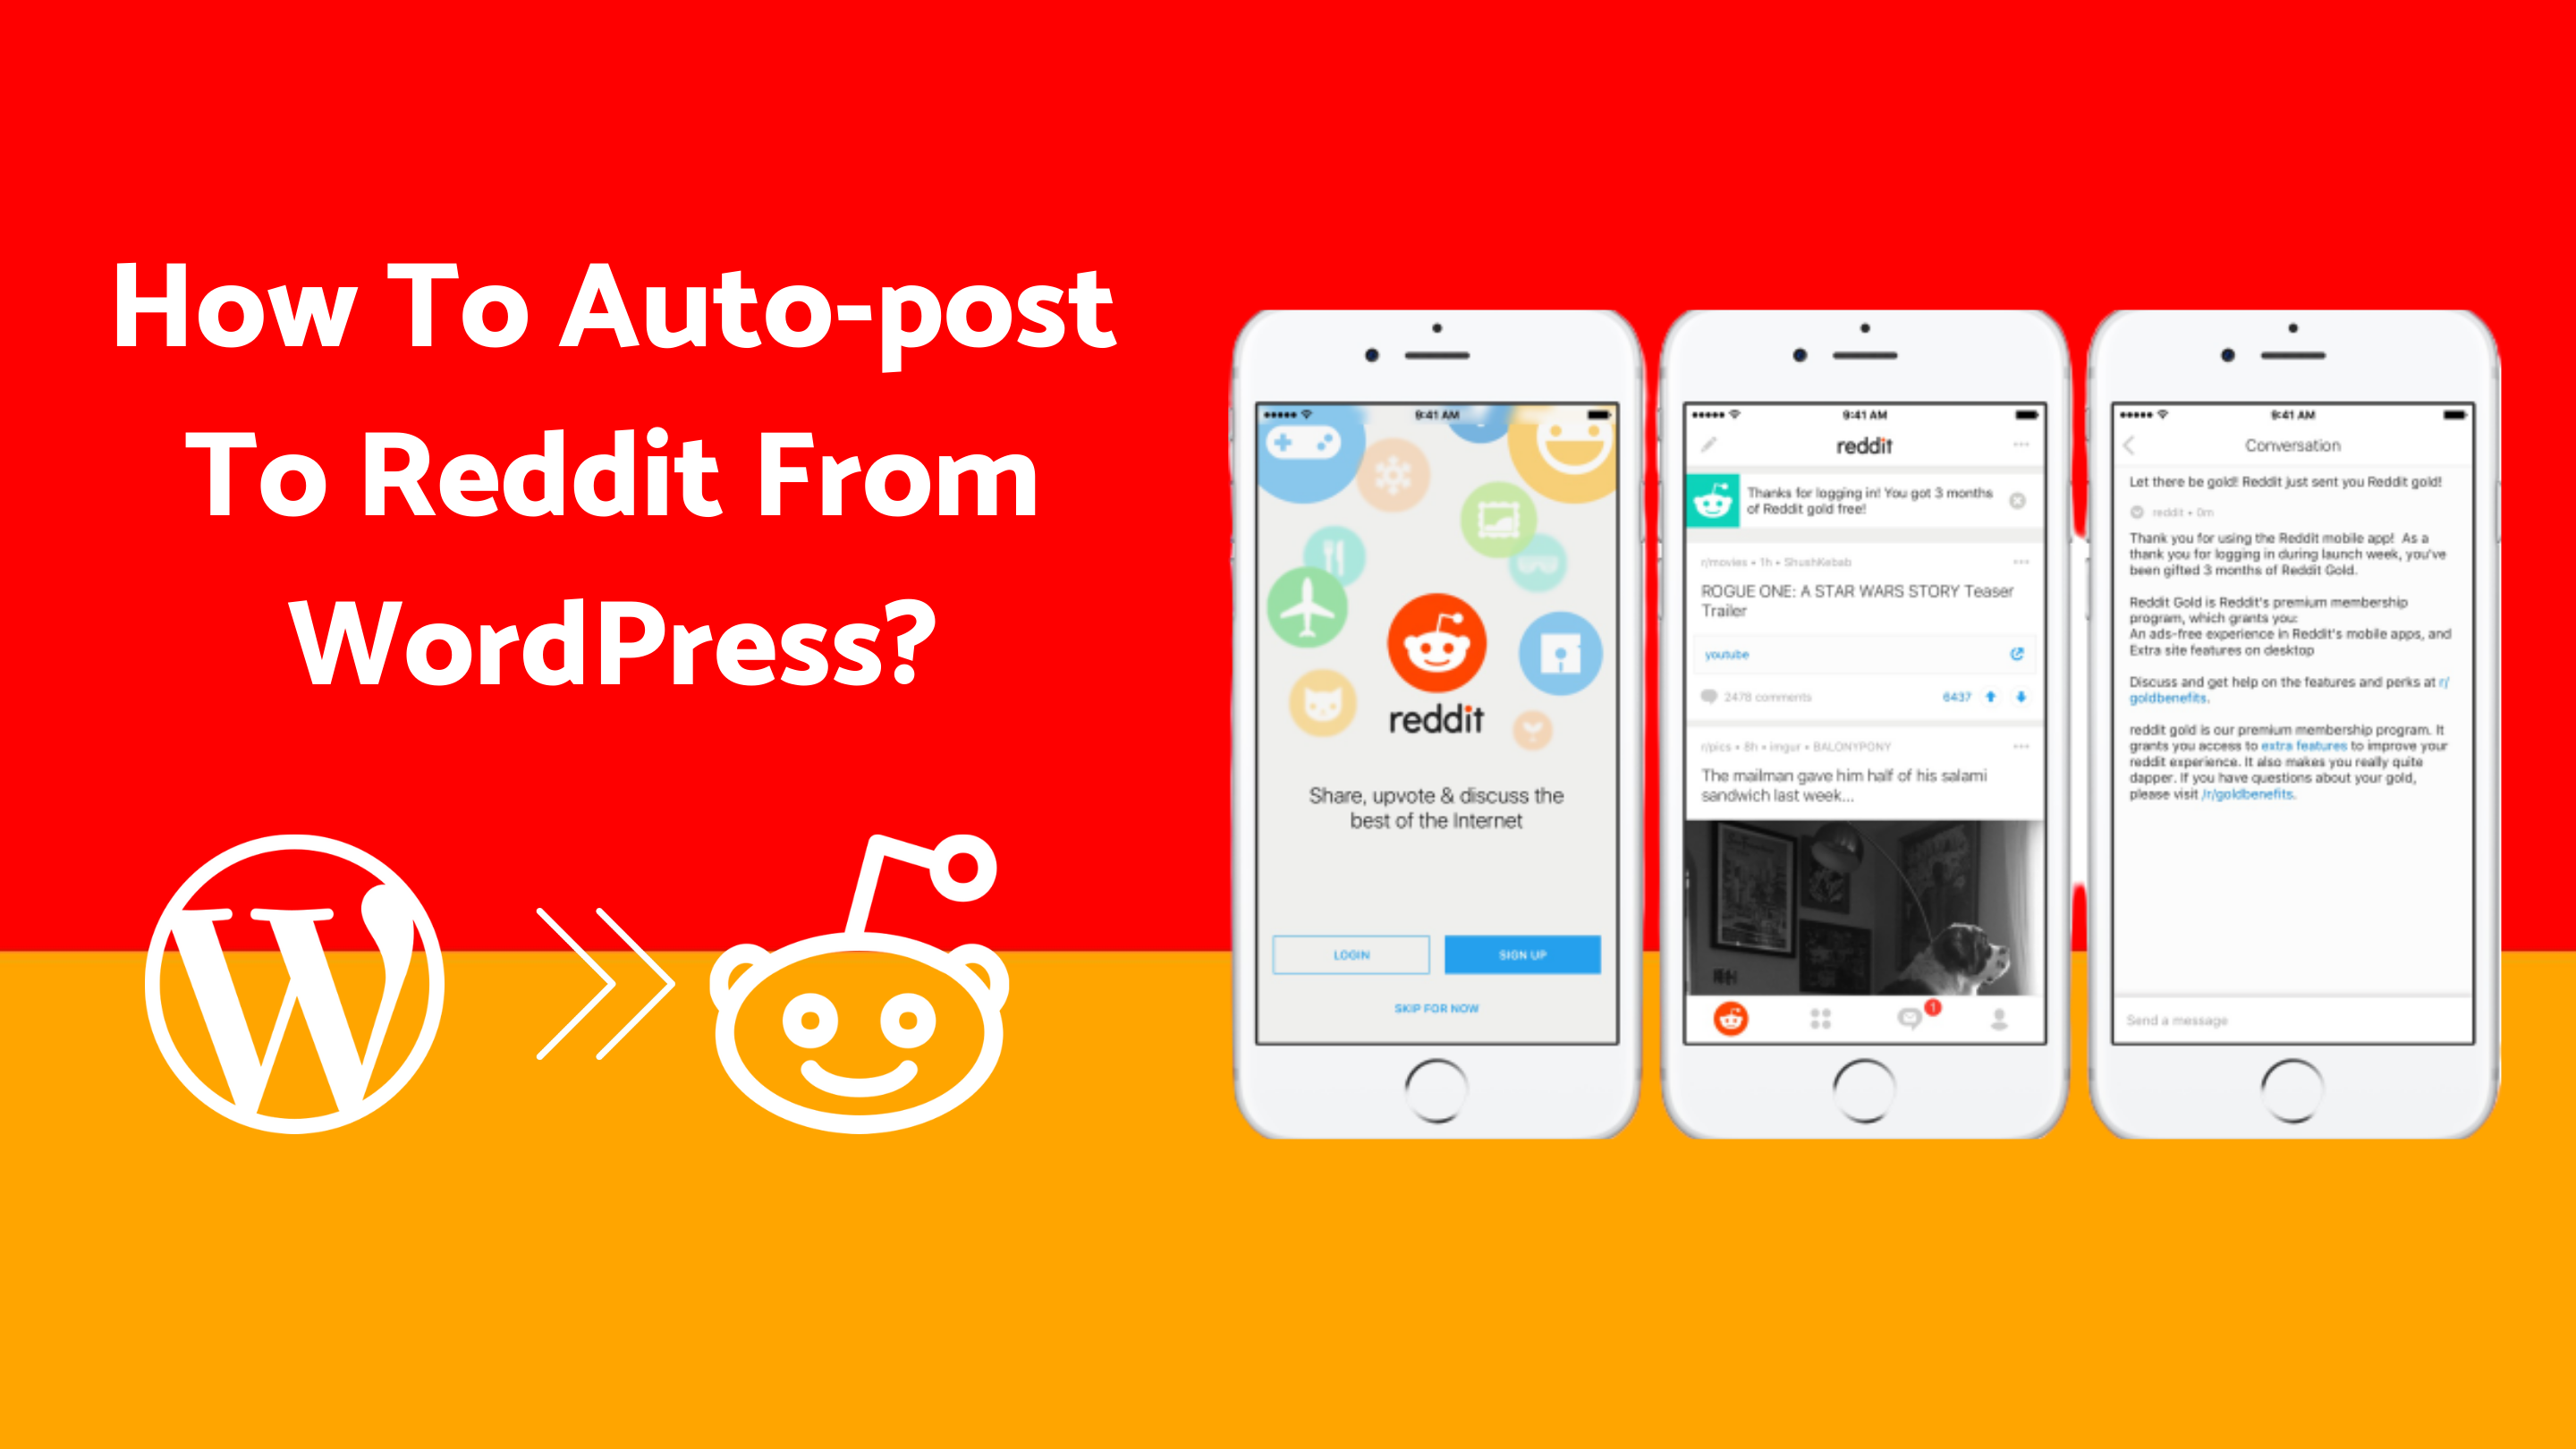 How To Auto-Post To Reddit From WordPress [A Complete Guide]